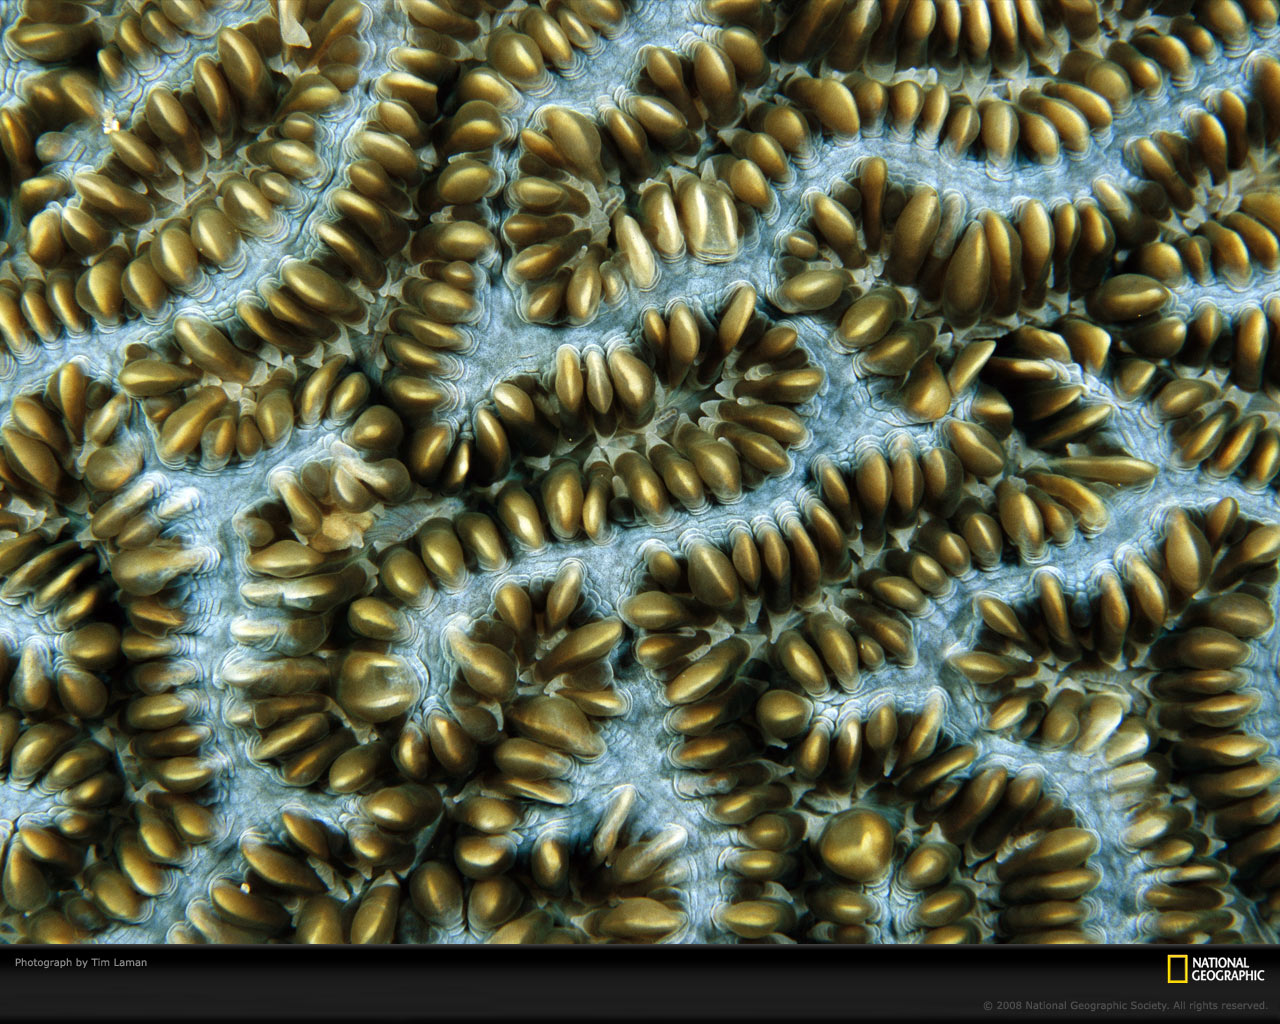 Coral Wallpaper Patterns Download wallpaper 1280 x 1280x1024